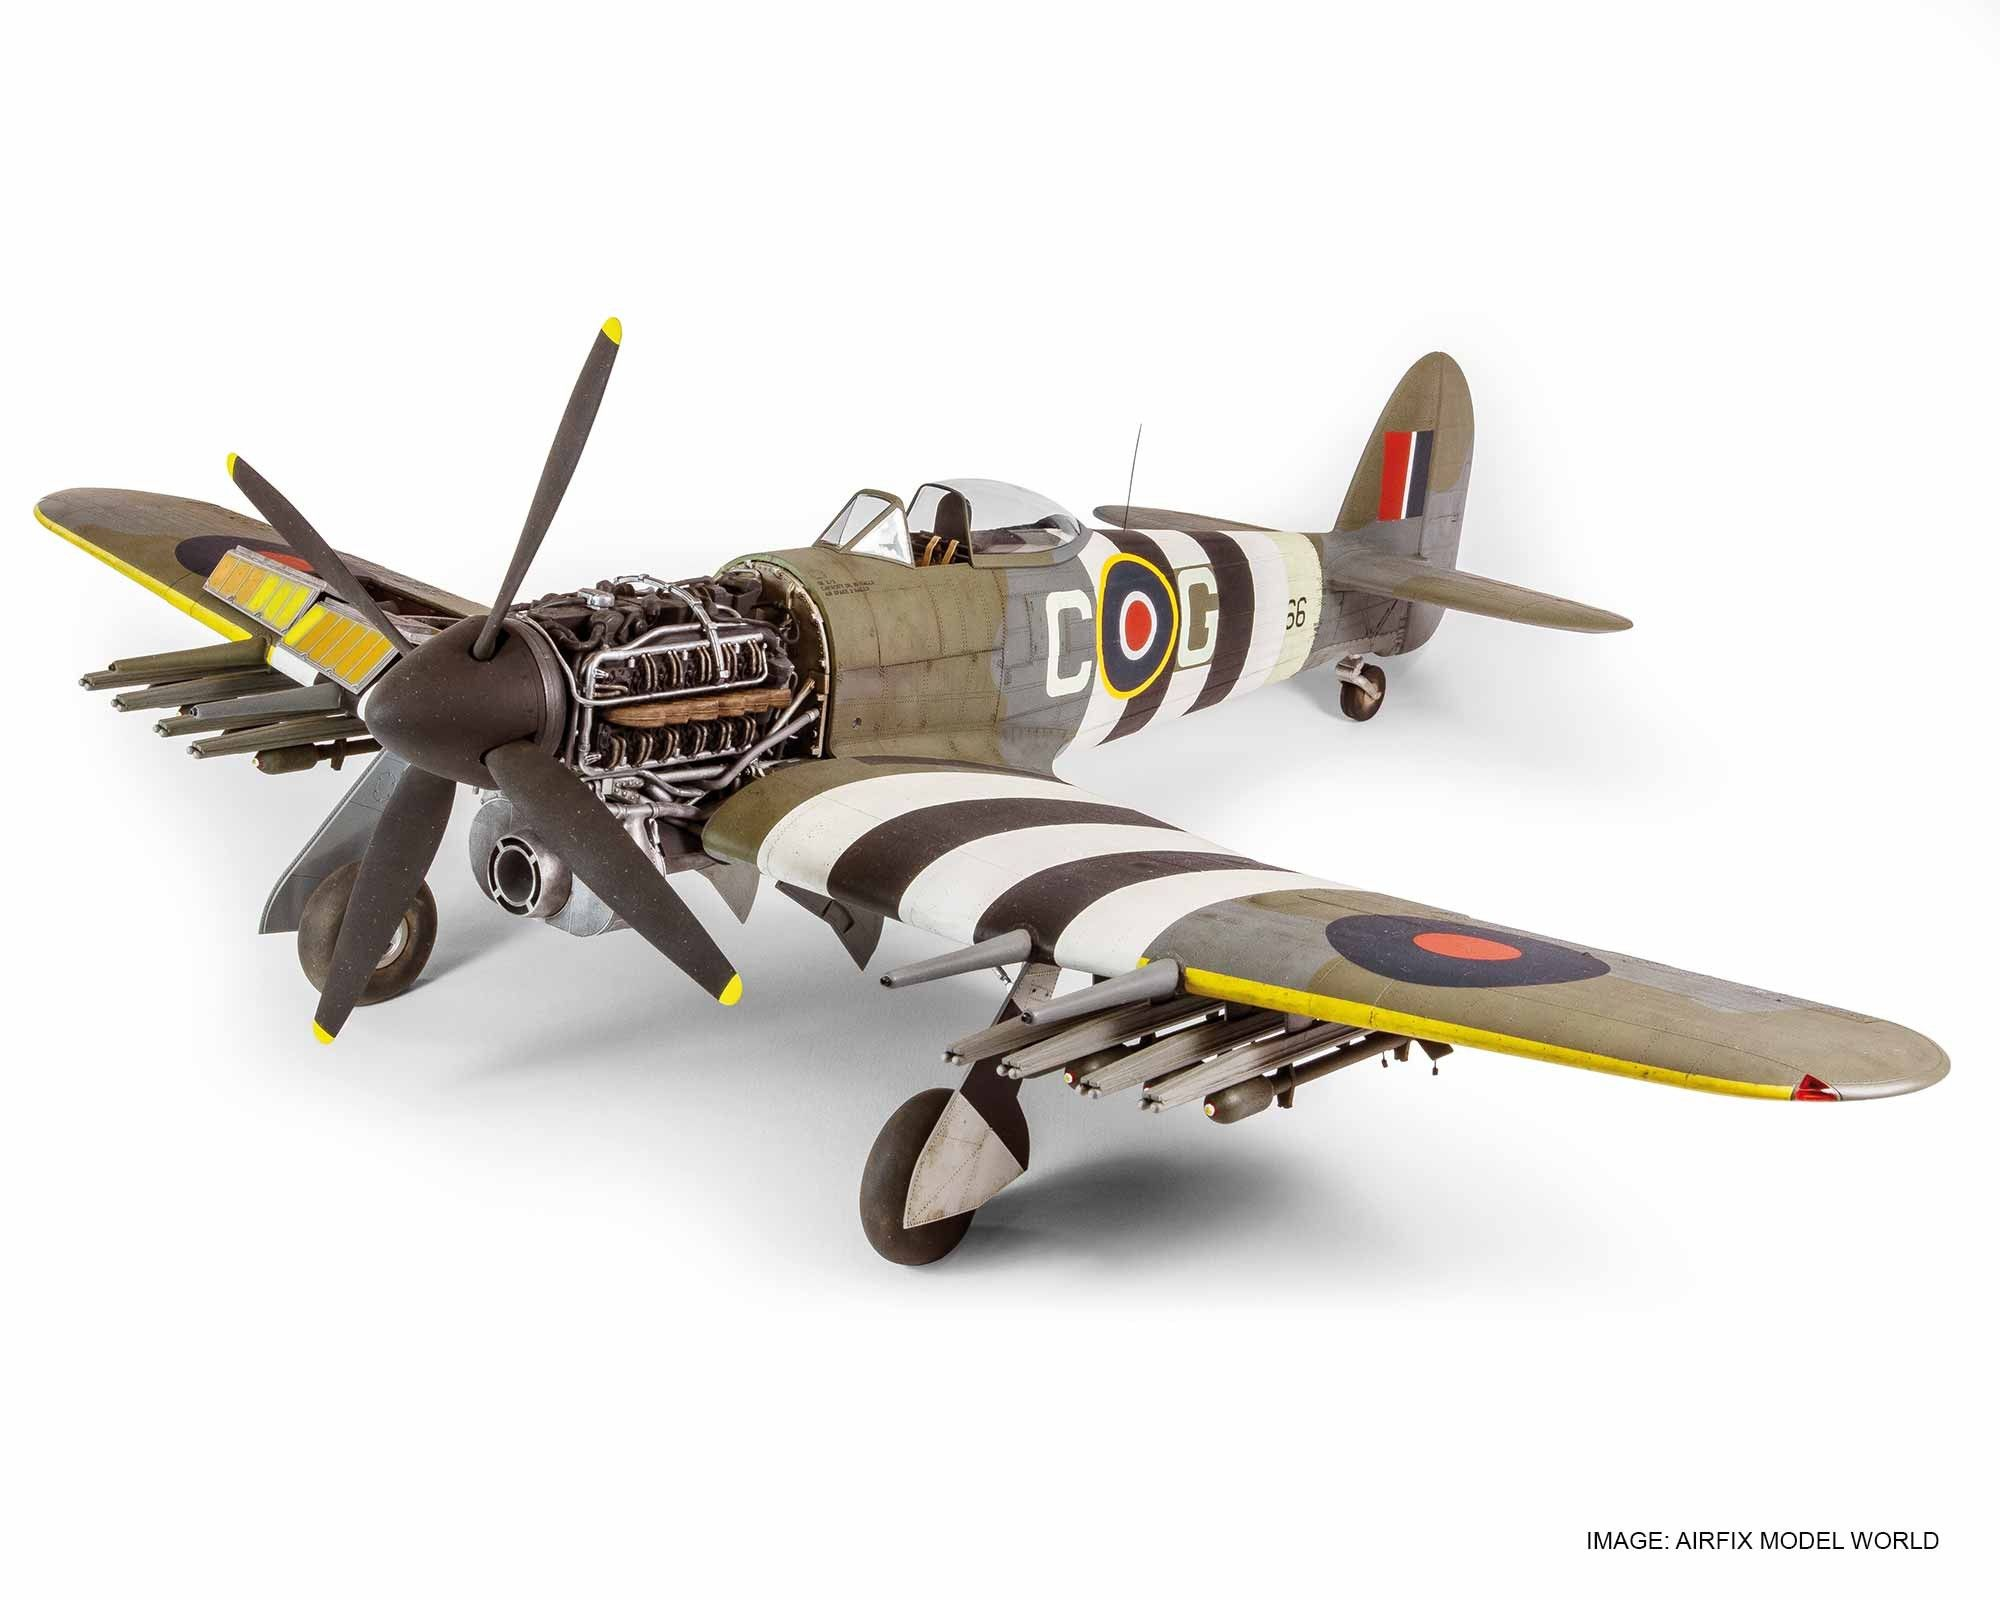 New in a super detailed scale model of the legendary ground attack hawker typhoon mkib this fantastic model has been created using our advanced cad design